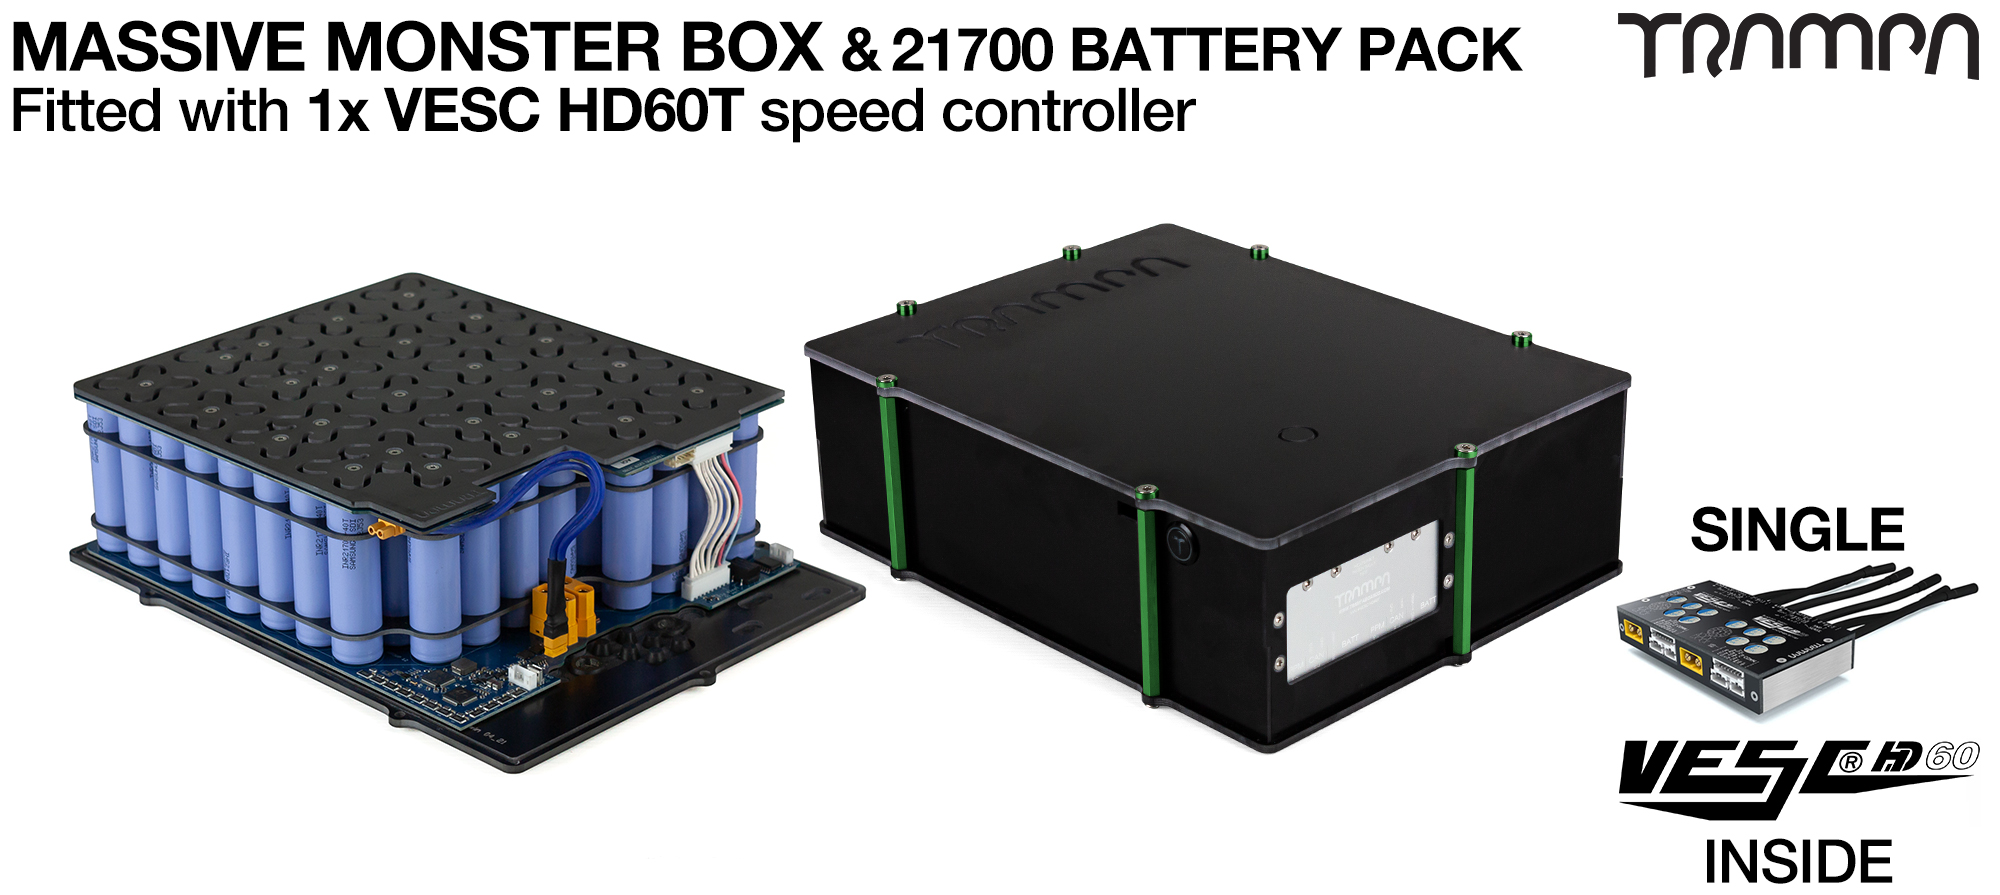 21700 2WD MASSIVE MONSTER Box 21700 PCB Pack with 1x VESC HD-60Twin & 84x 21700 cells 12s7p = 35Ah - Specifically made to work in conjunction with TRAMPA's Electric Decks but can be adapted to fit anything - UK Customers only